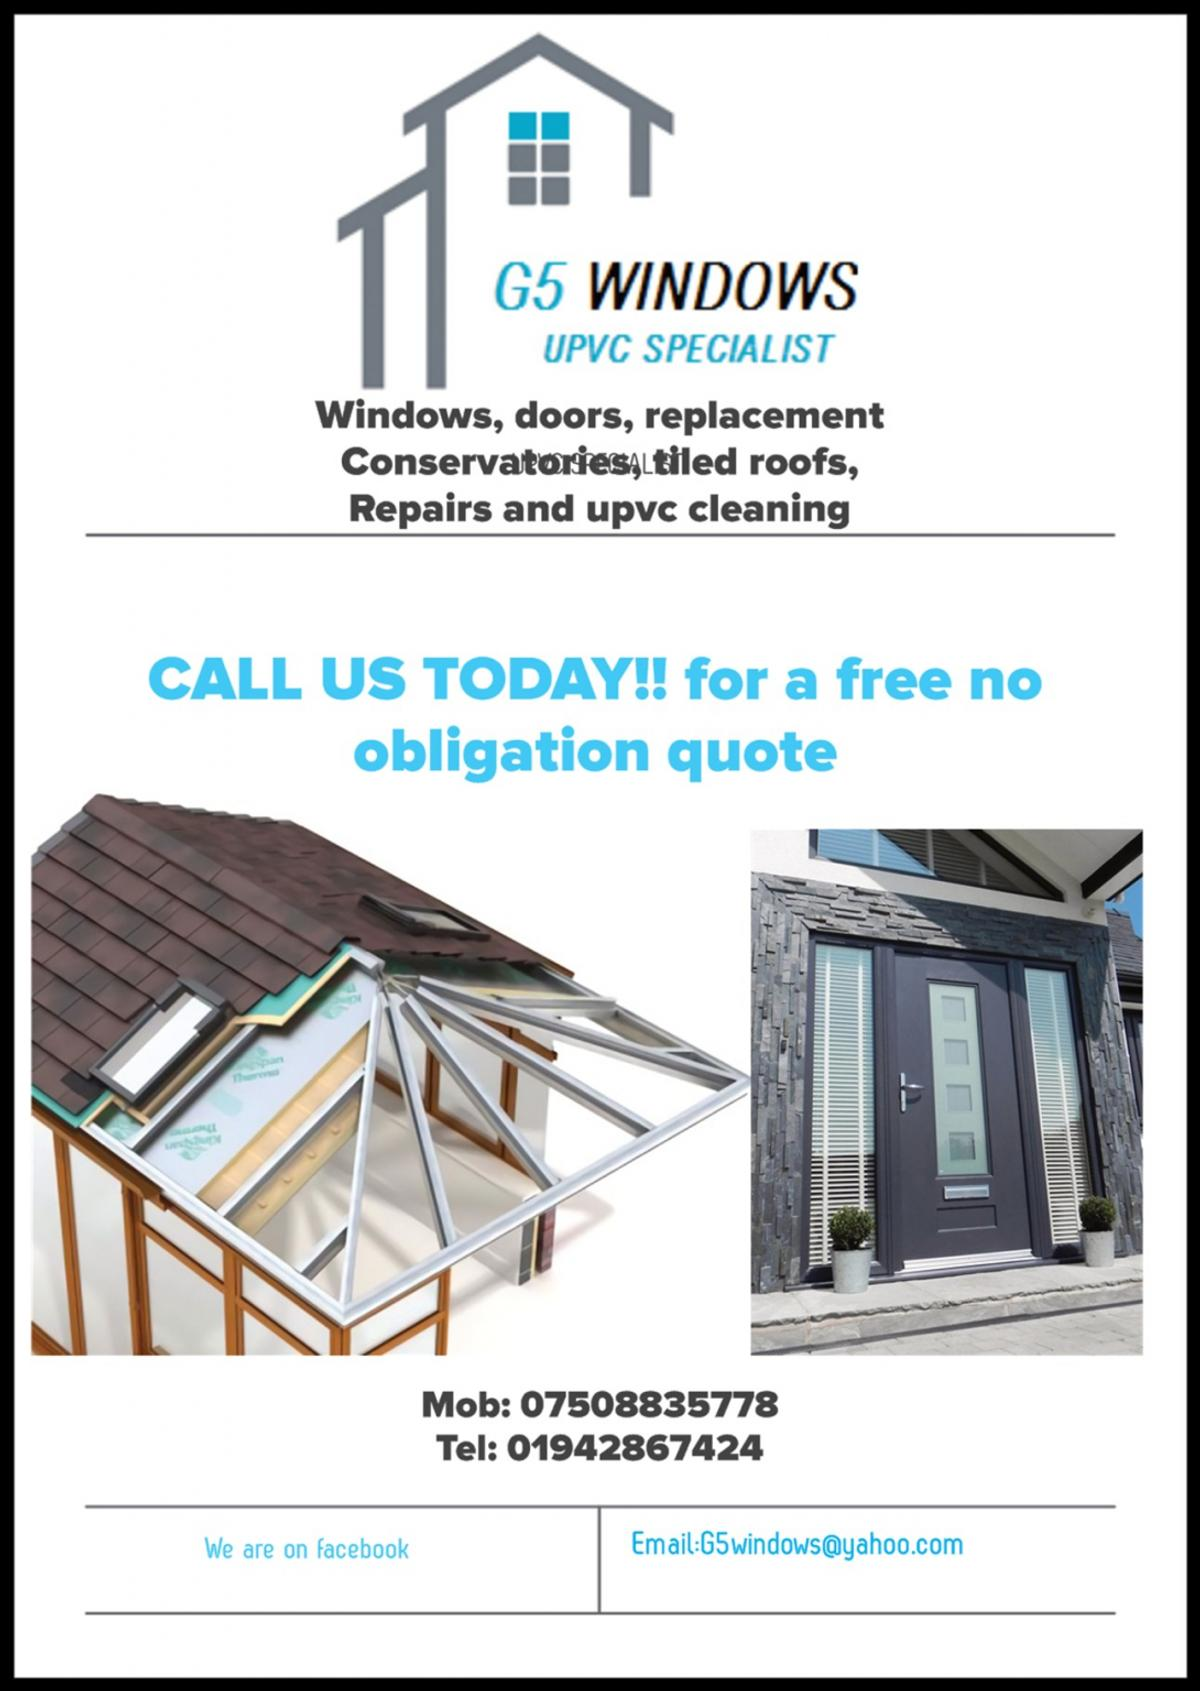 windows and doors supplied and fitted. repairs cleans double glazed units free quotation